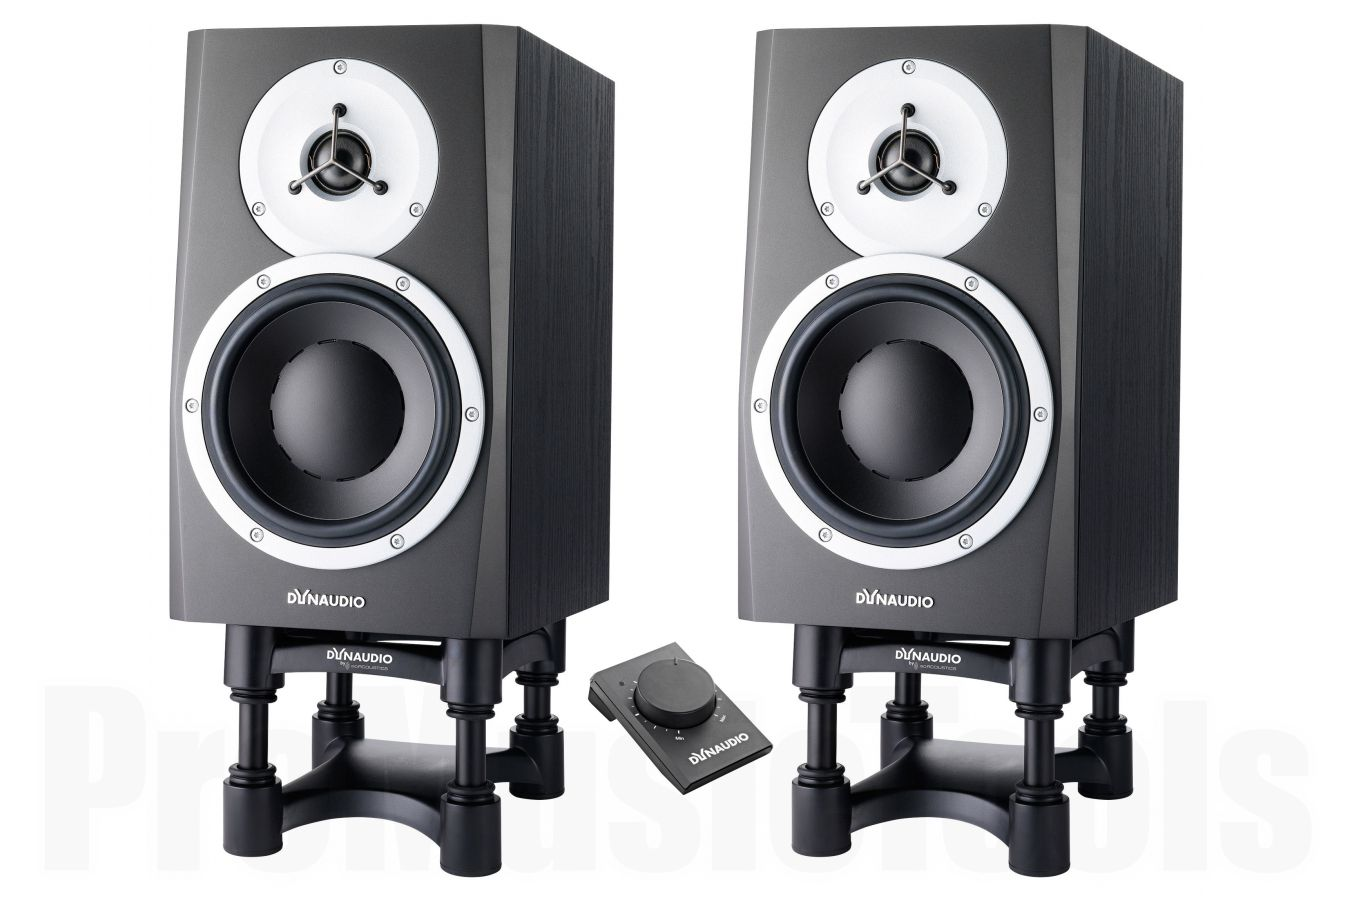 Dynaudio BM5 mkIII - PAIR BUNDLE SET (incl. 2x ISO-L8R155 & Dynaudio Volume Box)